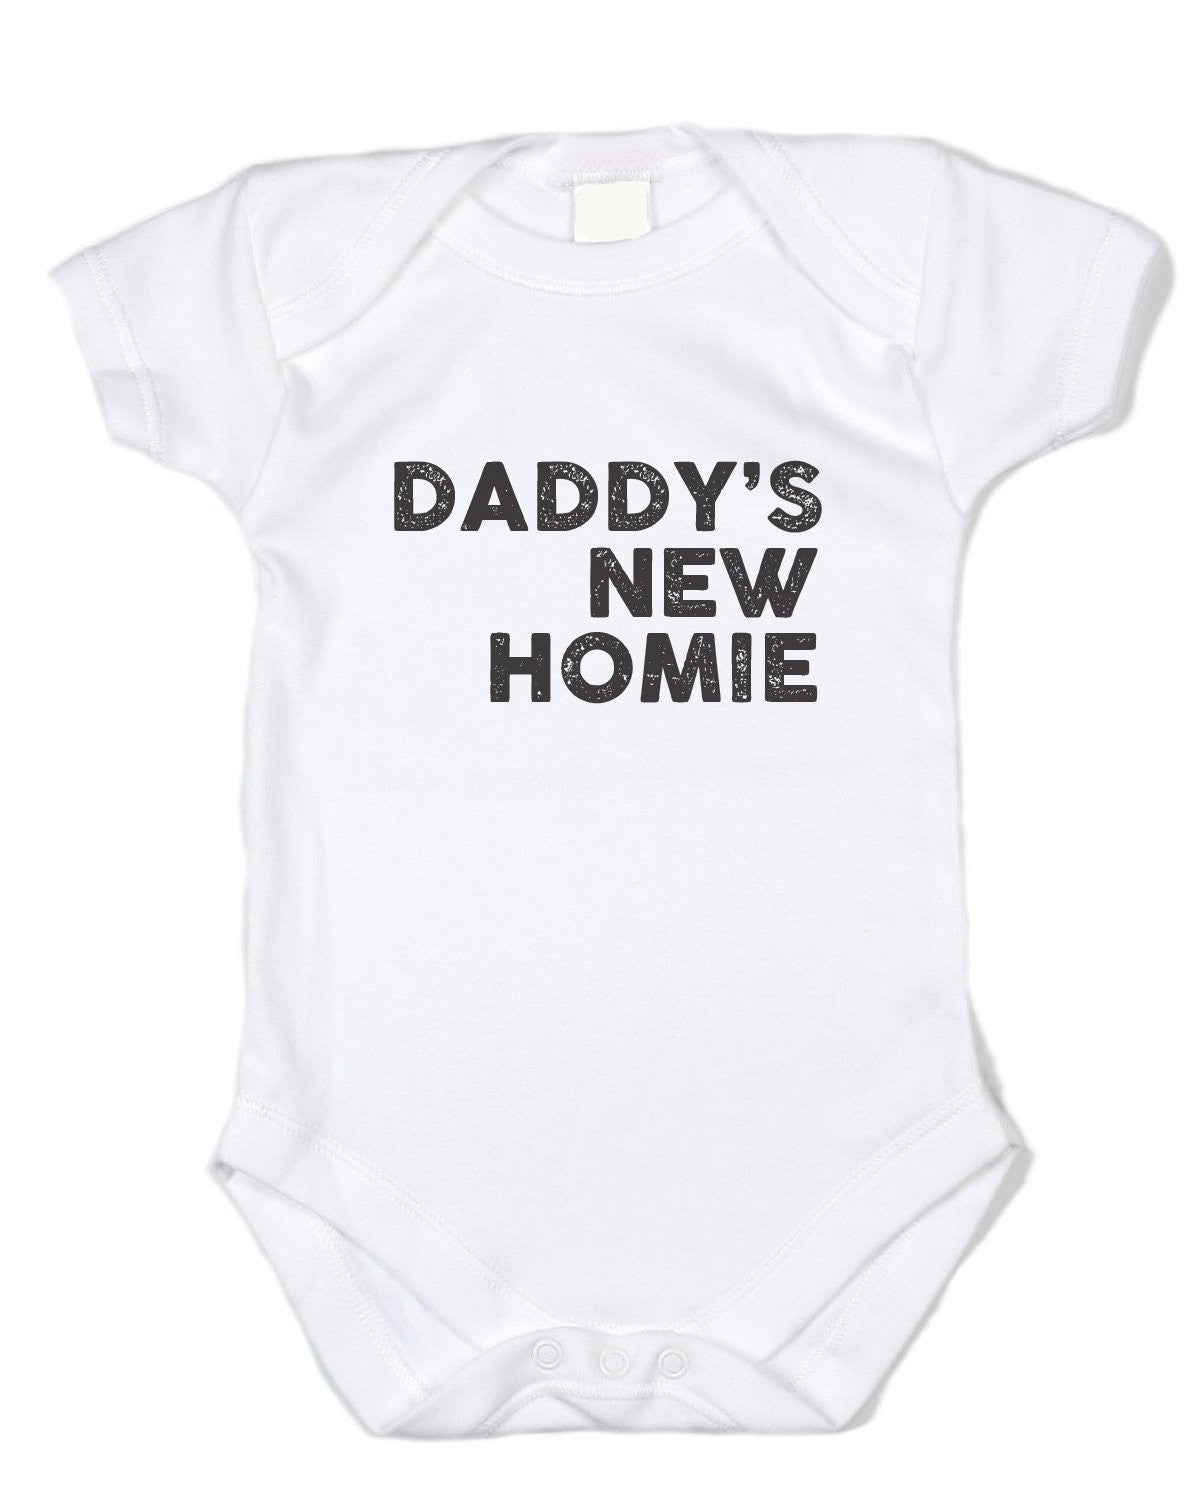 Funny Baby Clothes - Daddy's New Homie - Black Text, White Bodysuit